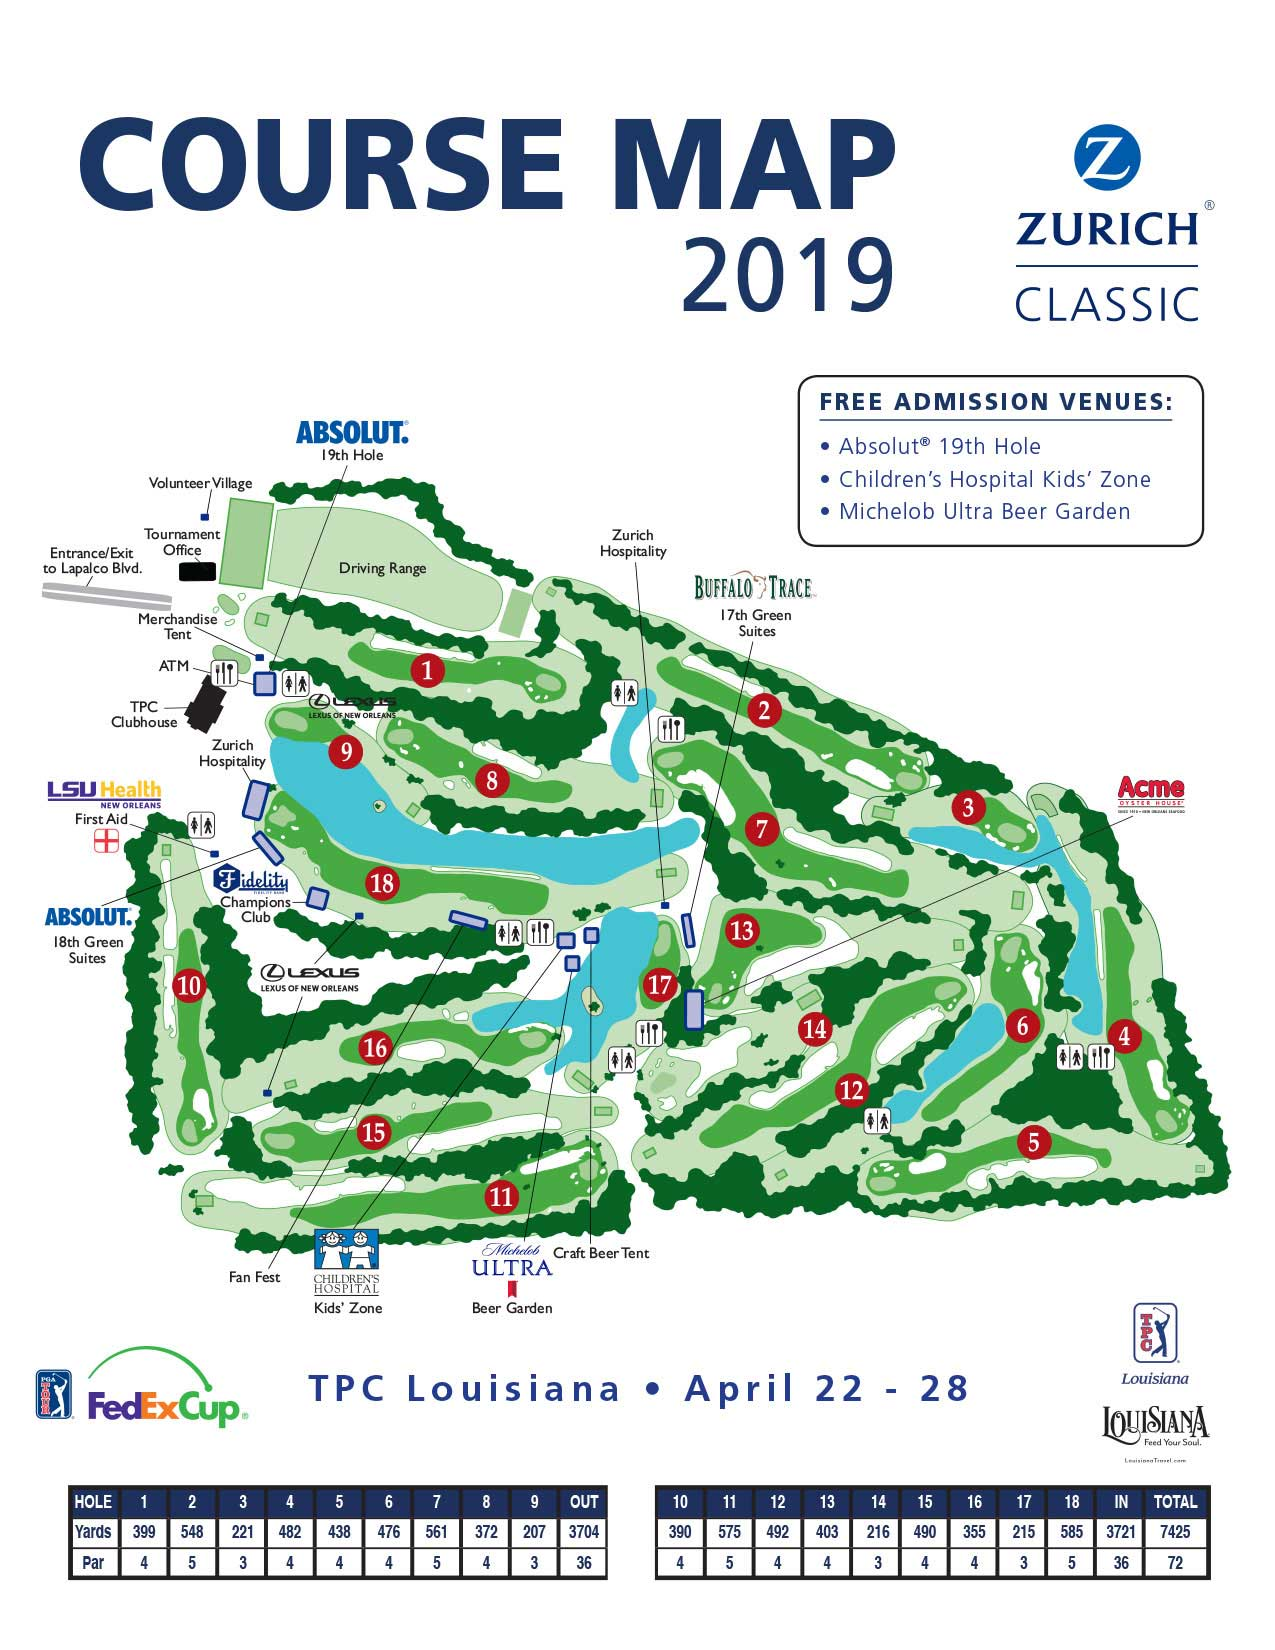 Course Activities Map – Zurich Clic of New Orleans on